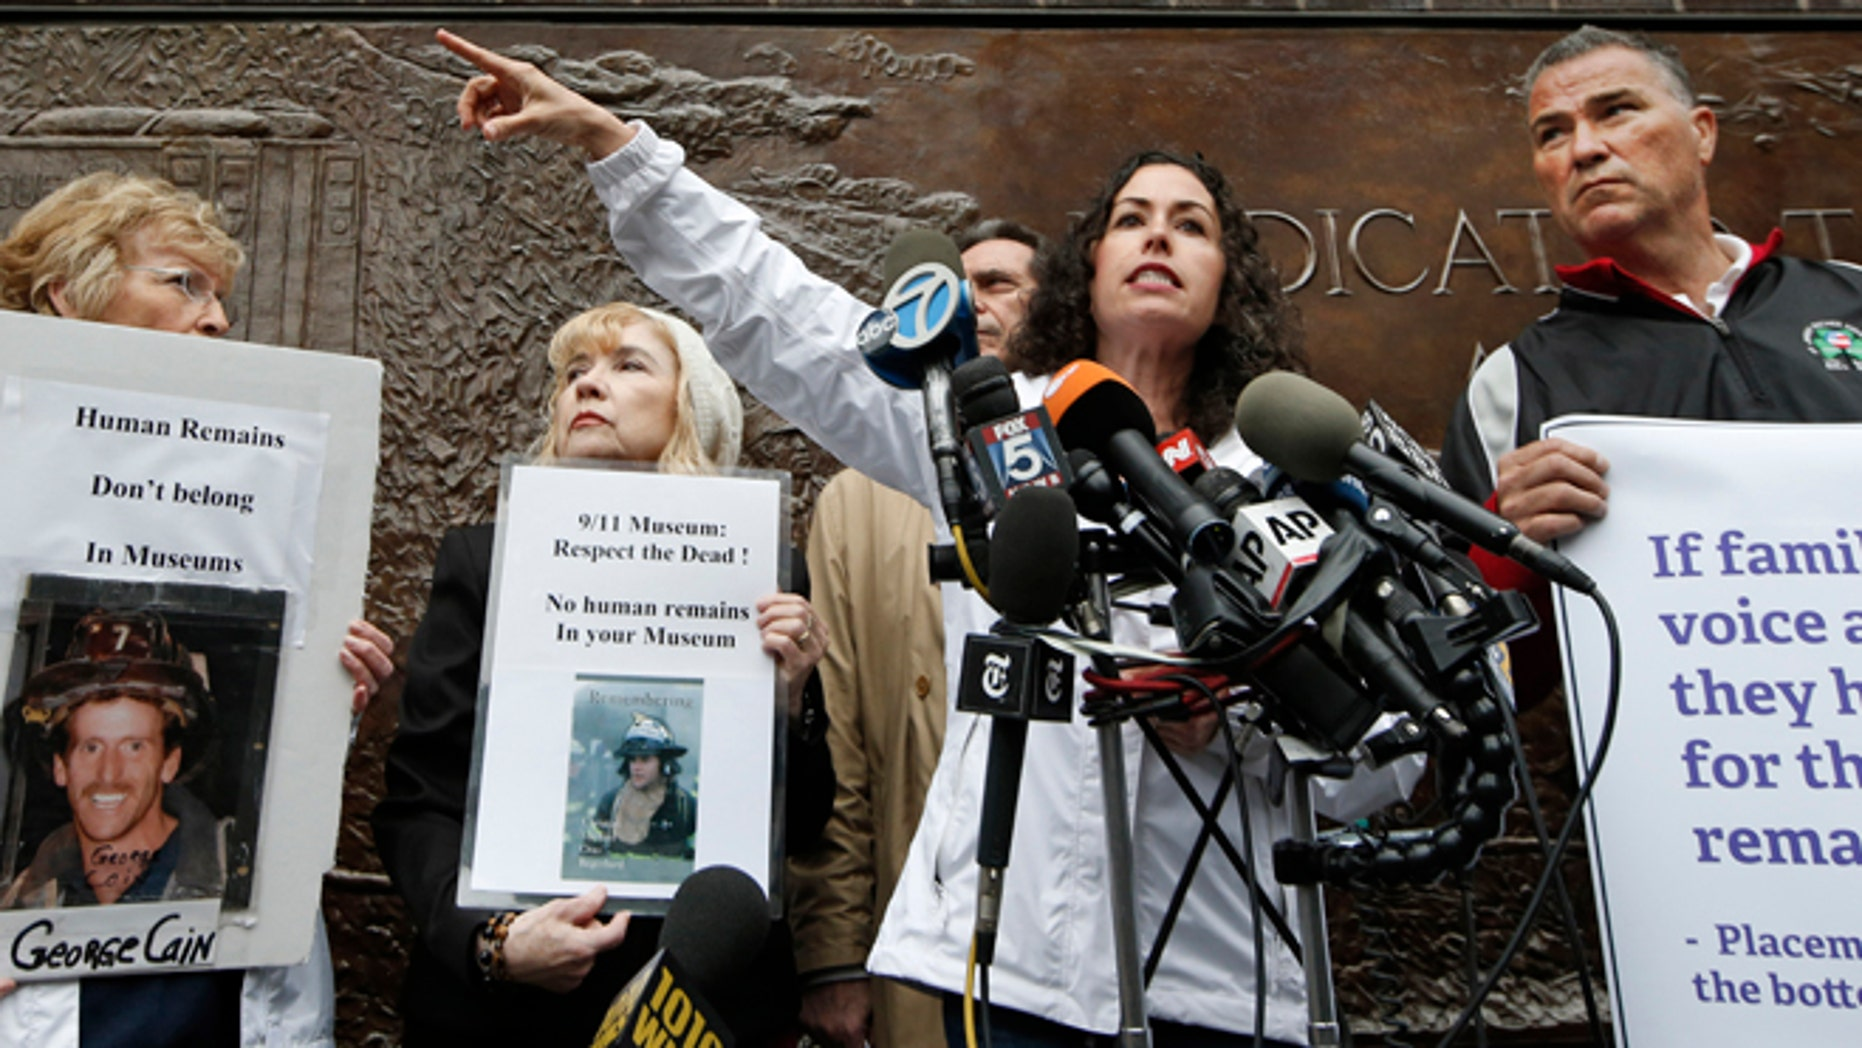 May 8, 2014: Rosaleen Tallon, sister of firefighter Sean Tallon, killed in the 9-11 World Trade Center attacks and other 9-11 victims' family members hold a press conference in front of a fire station opposite the National September 11 Memorial & Museum in New York.